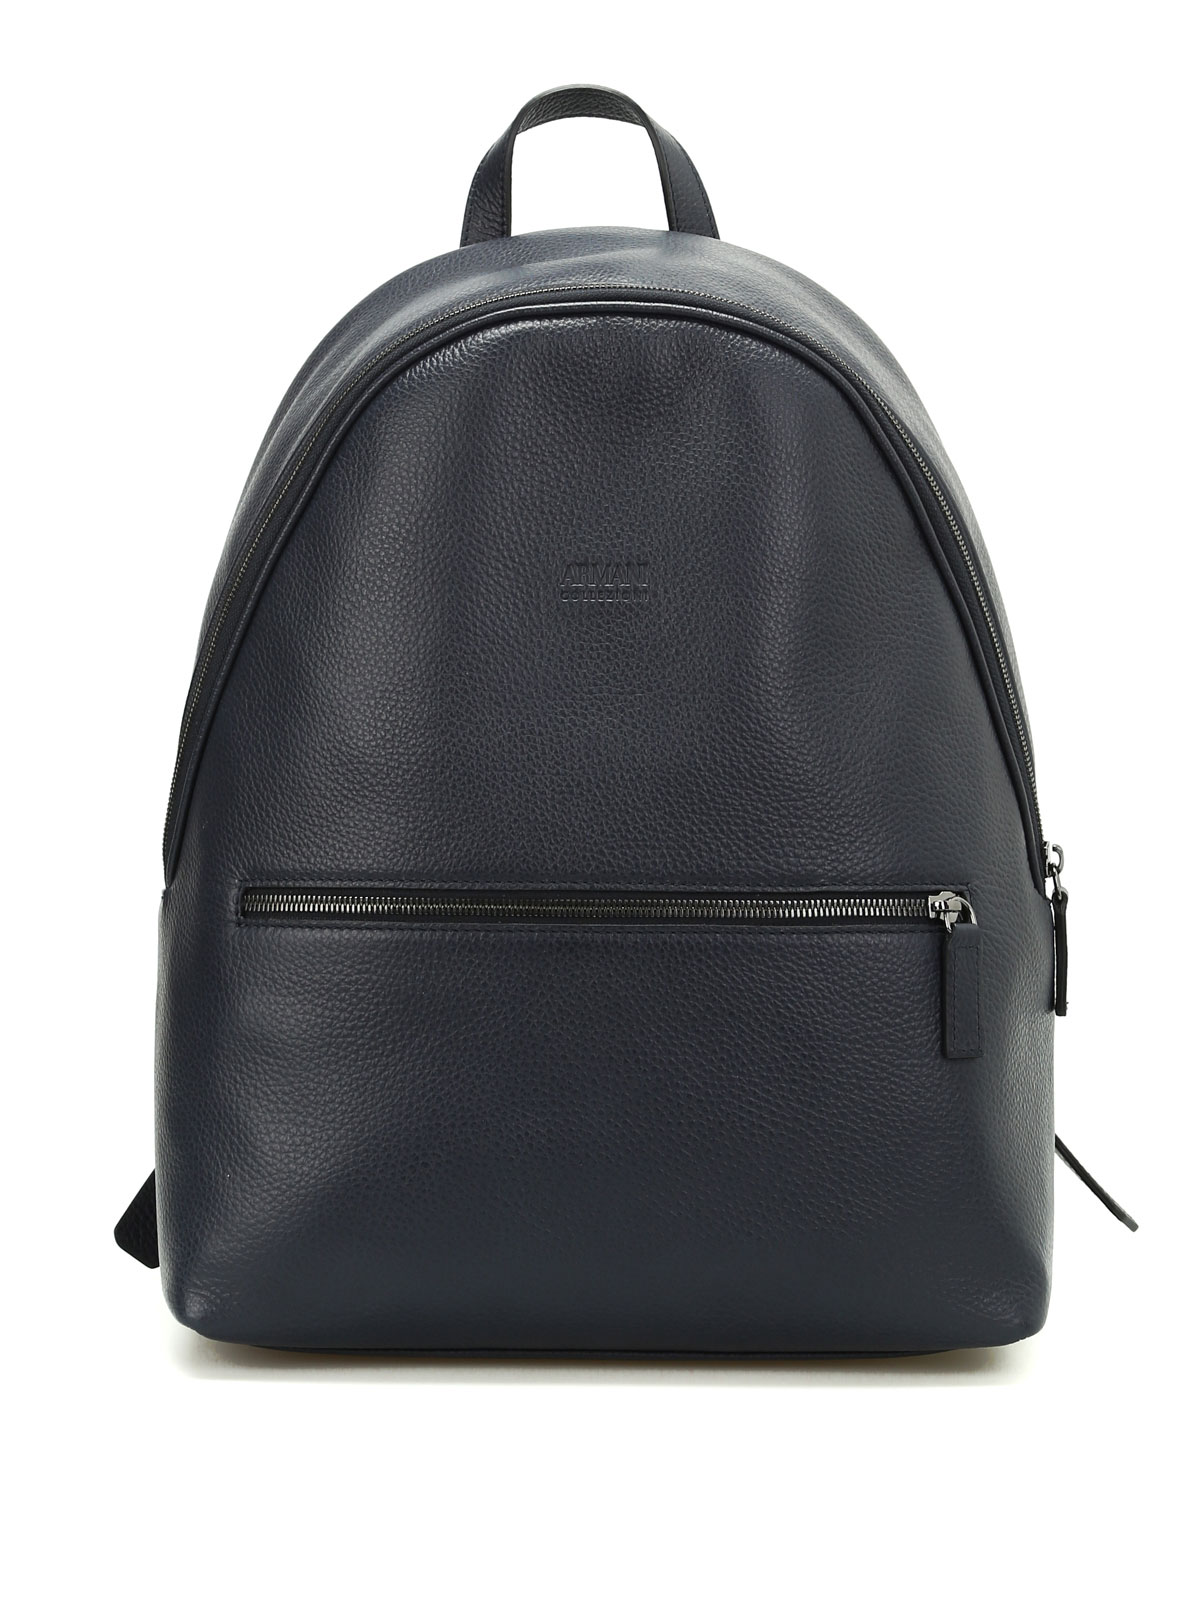 Picture of ARMANI | Leather Backpack